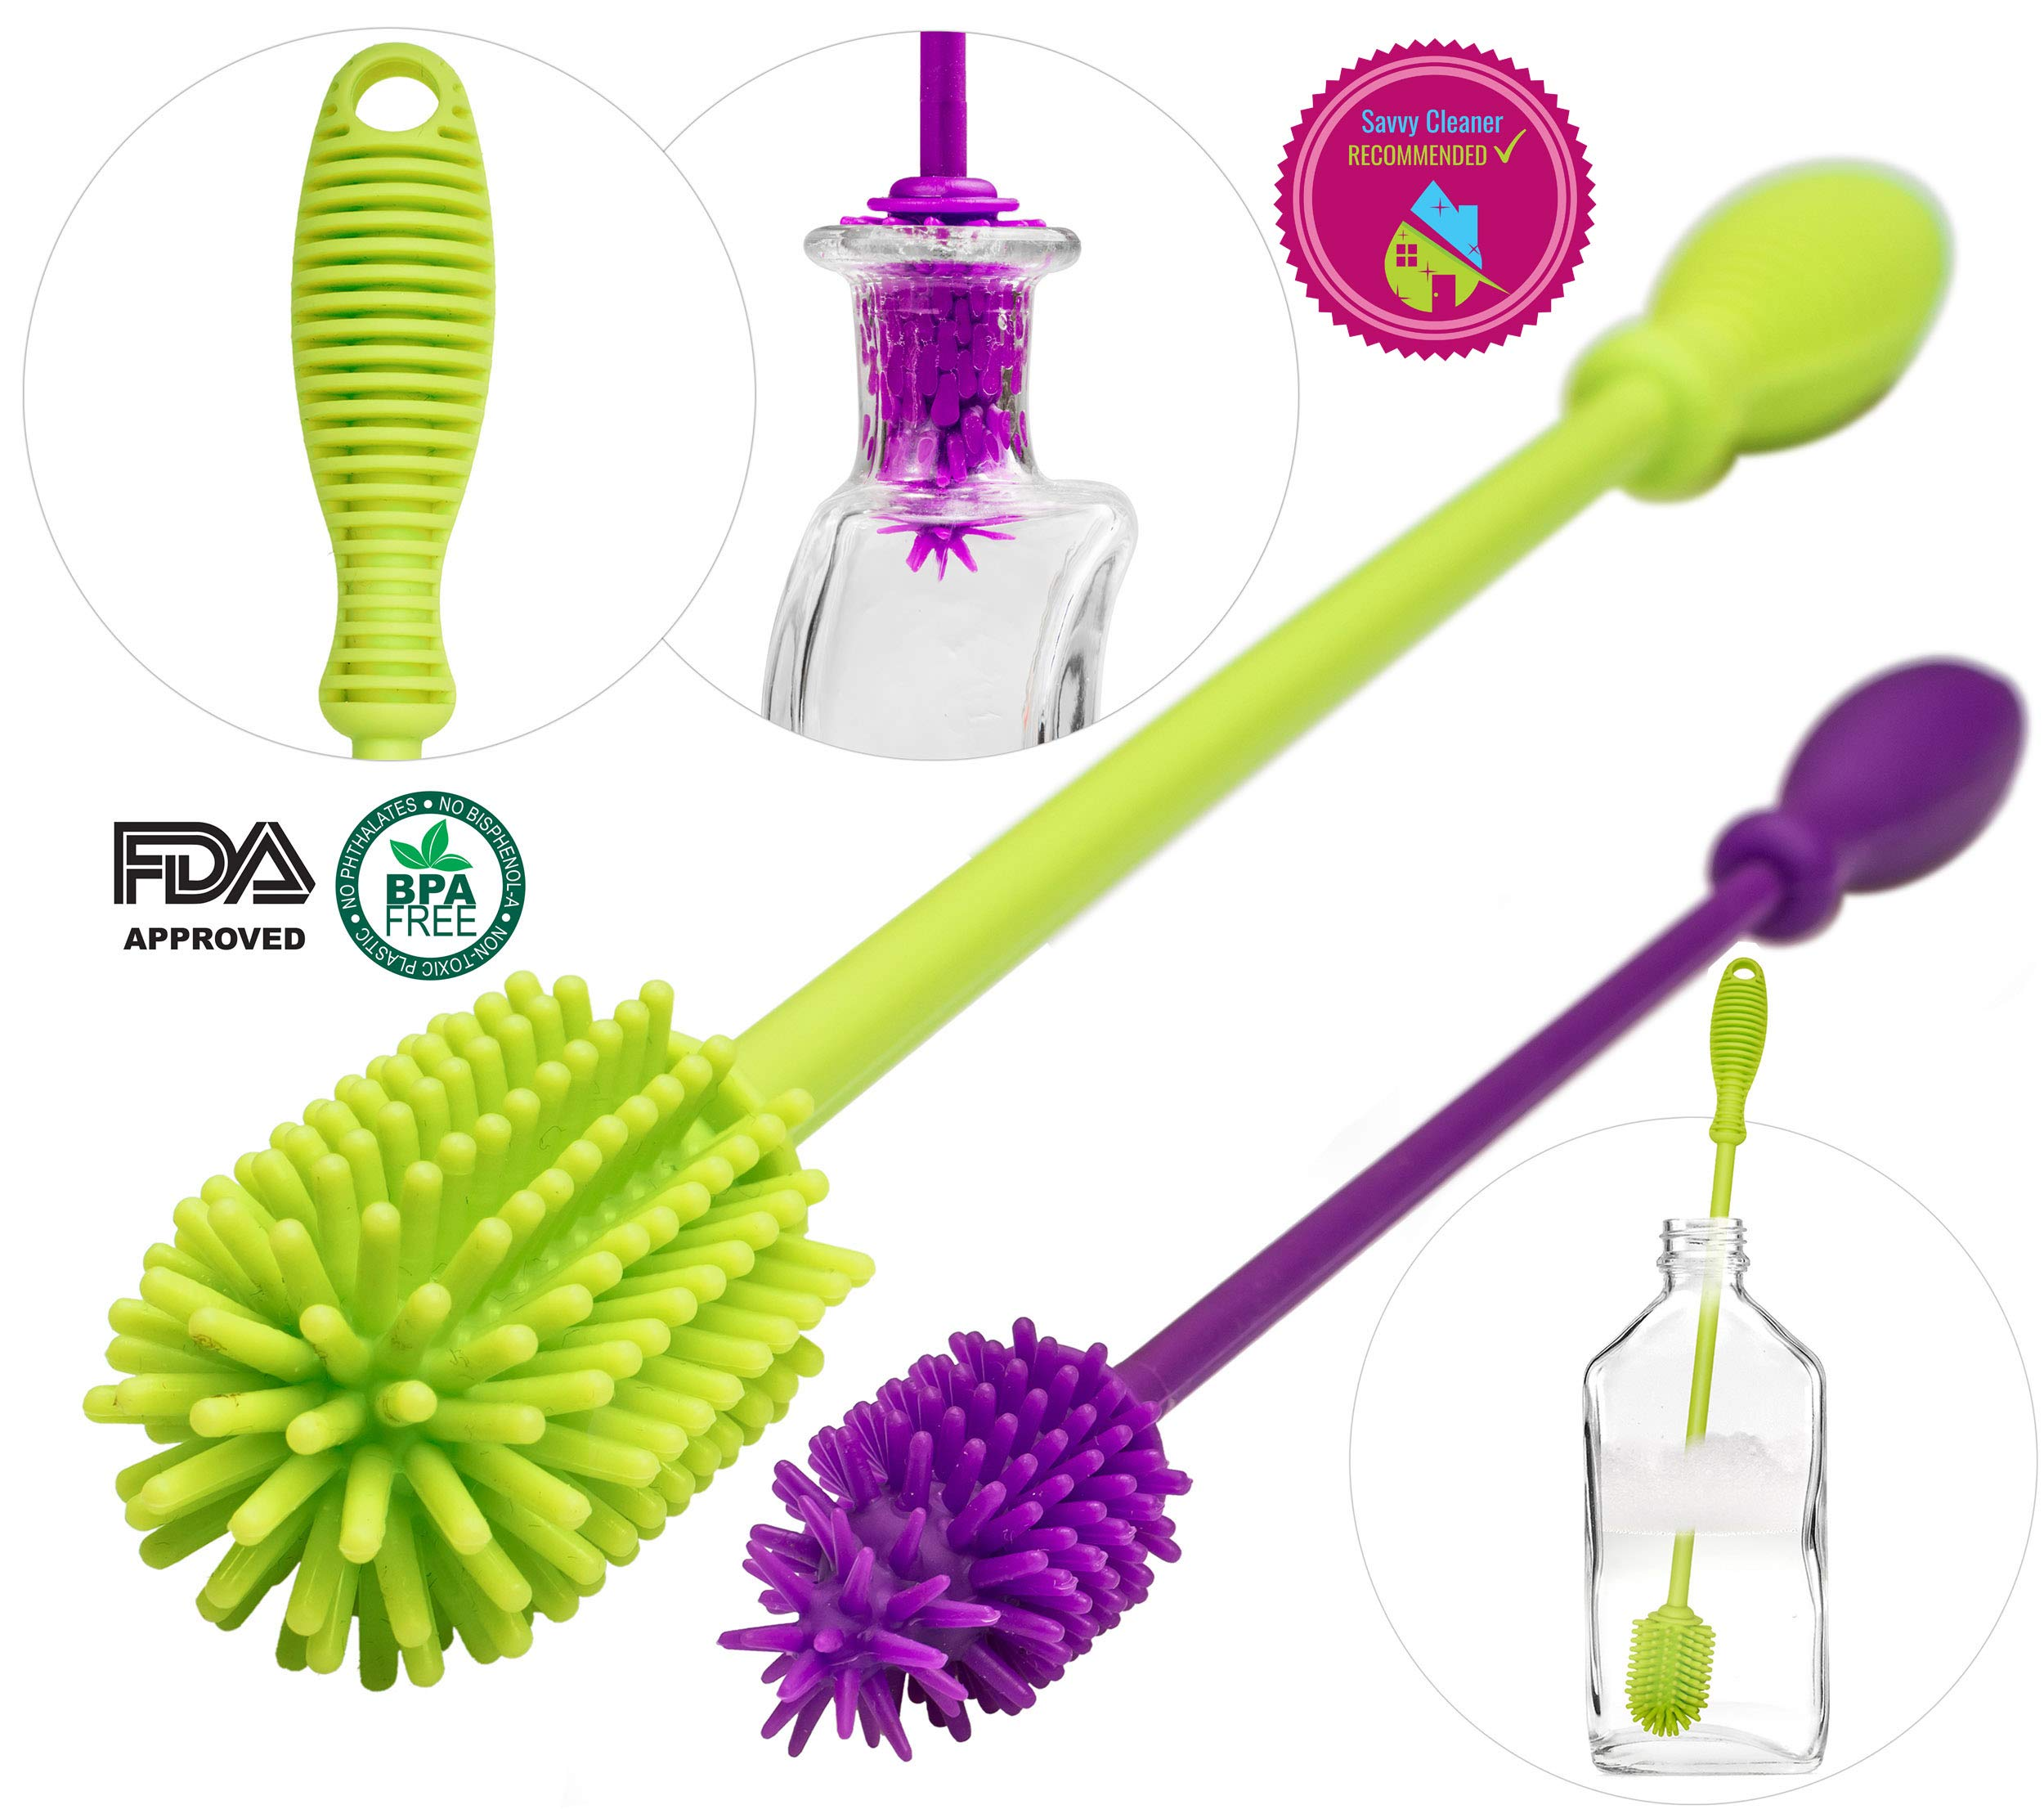 A-Brush Silicone Bottle Brush Cleaner BPA Free - FDA Cert Long Handle Baby Bottle Cleaner Nipple Brush Ideal for Glass & Plastic Water Bottles Tumblers Hydro Flask (Set of 2pcs Green/Purple) by A2S Protection